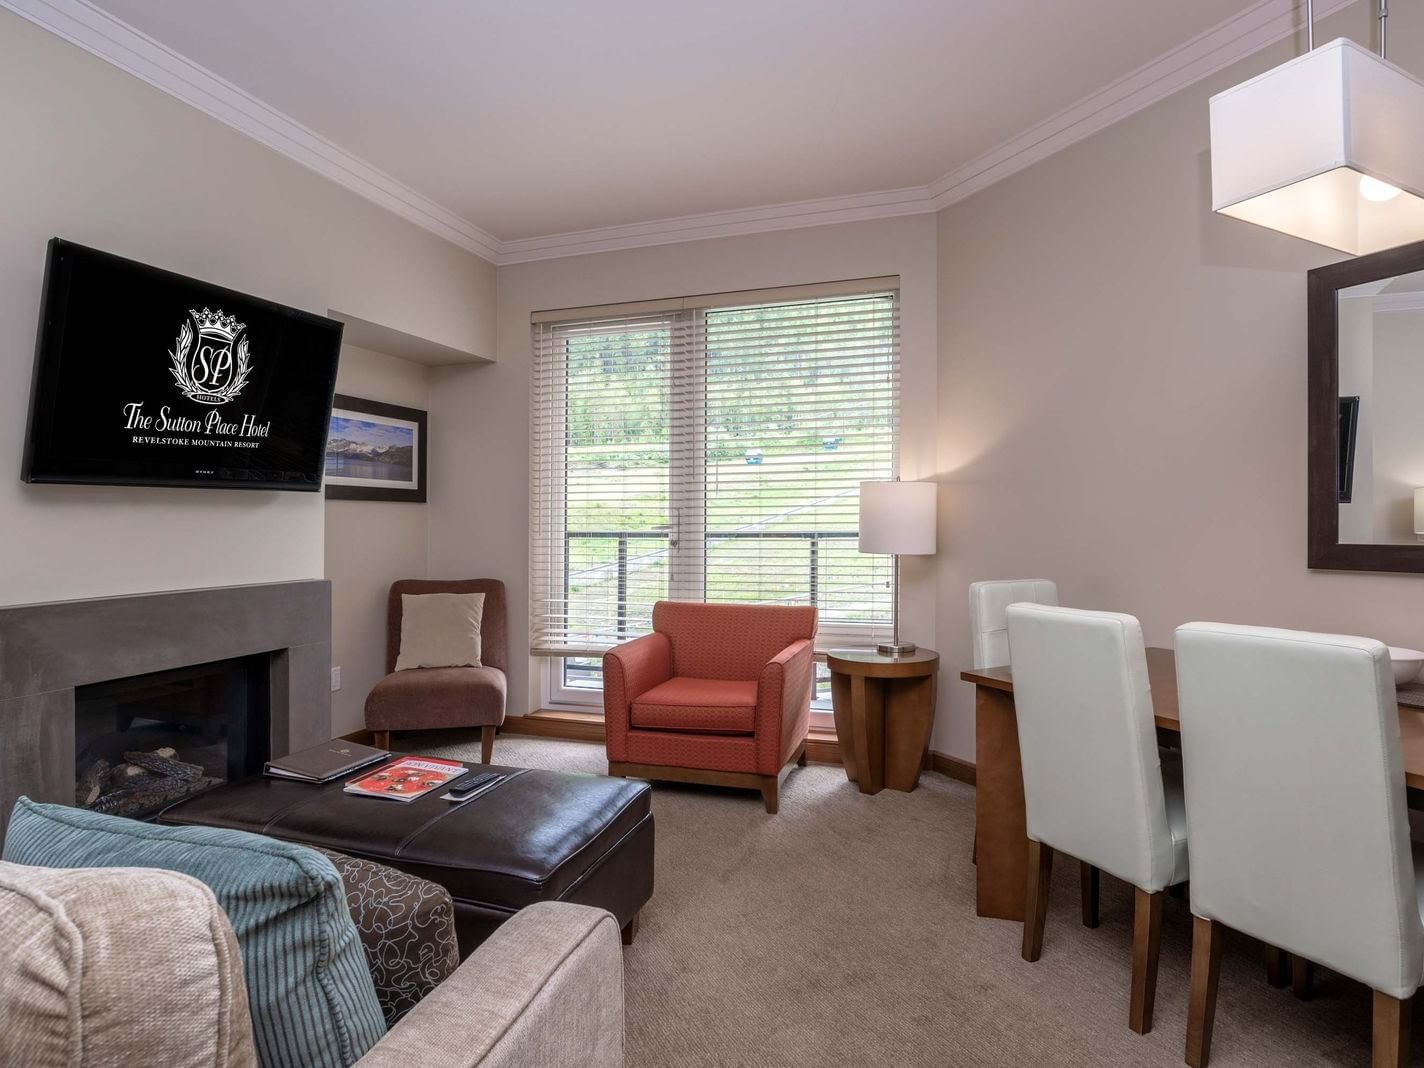 One Bedroom Suite The Sutton Place Hotel Revelstoke Mountain Resort